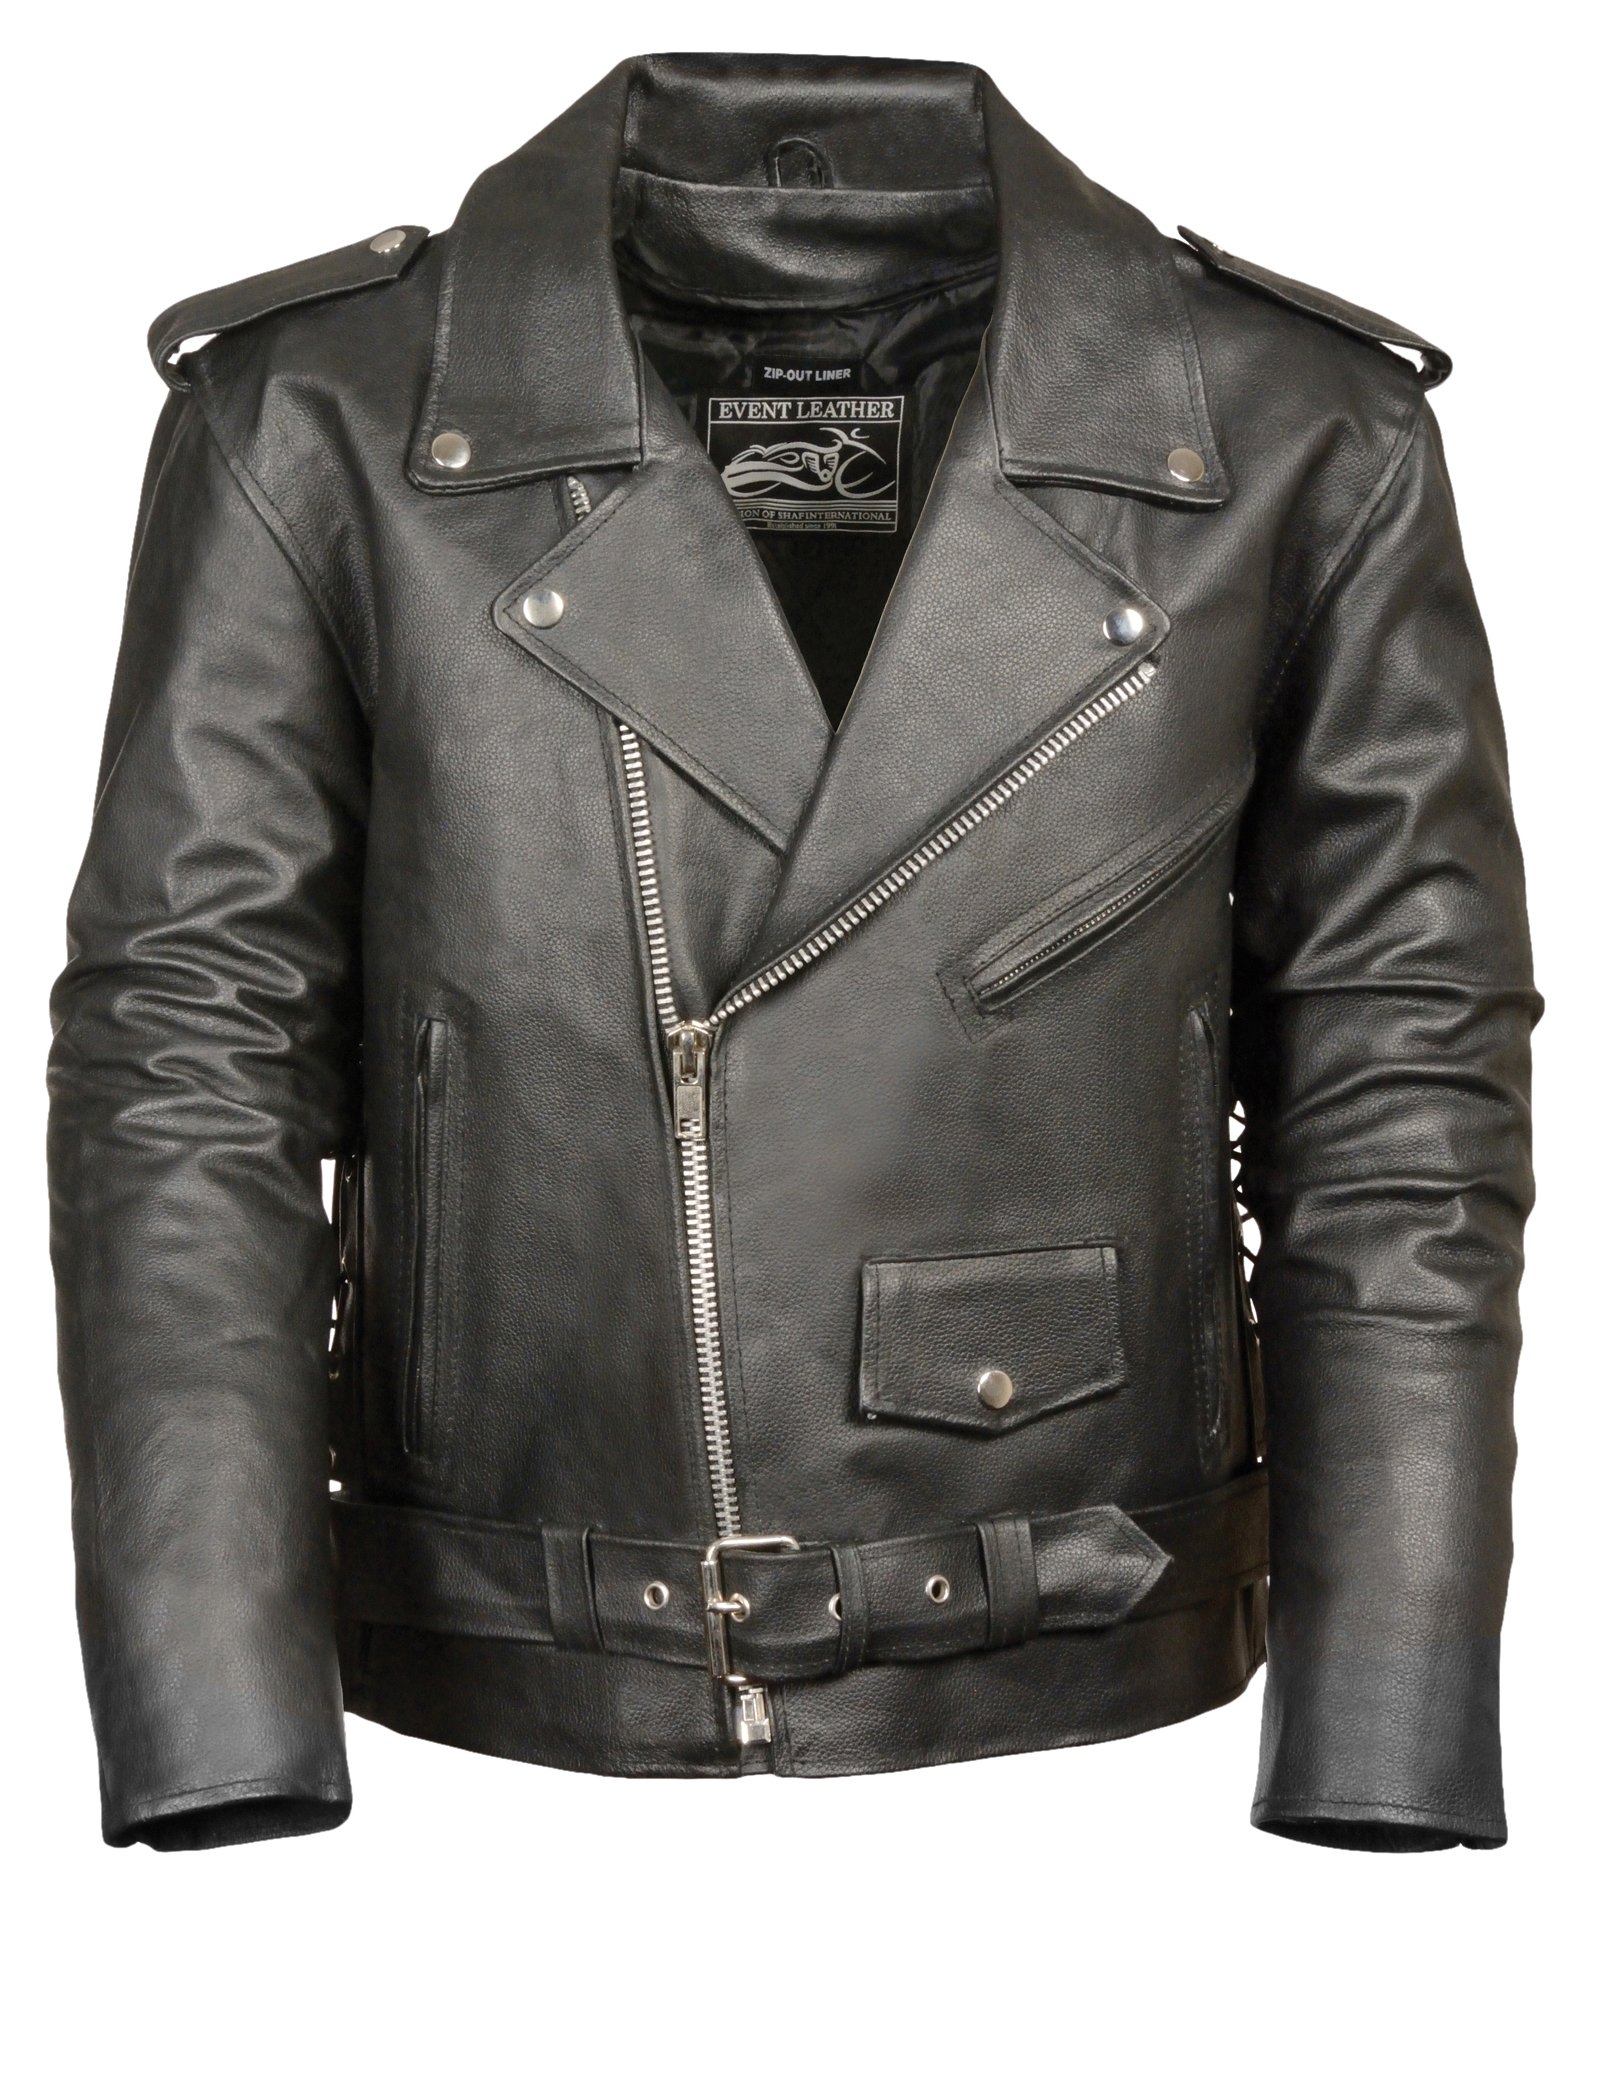 Event Biker Leather Men's Basic Motorcycle Jacket with Pockets (Black, 5X-Large) by Event Biker Leather